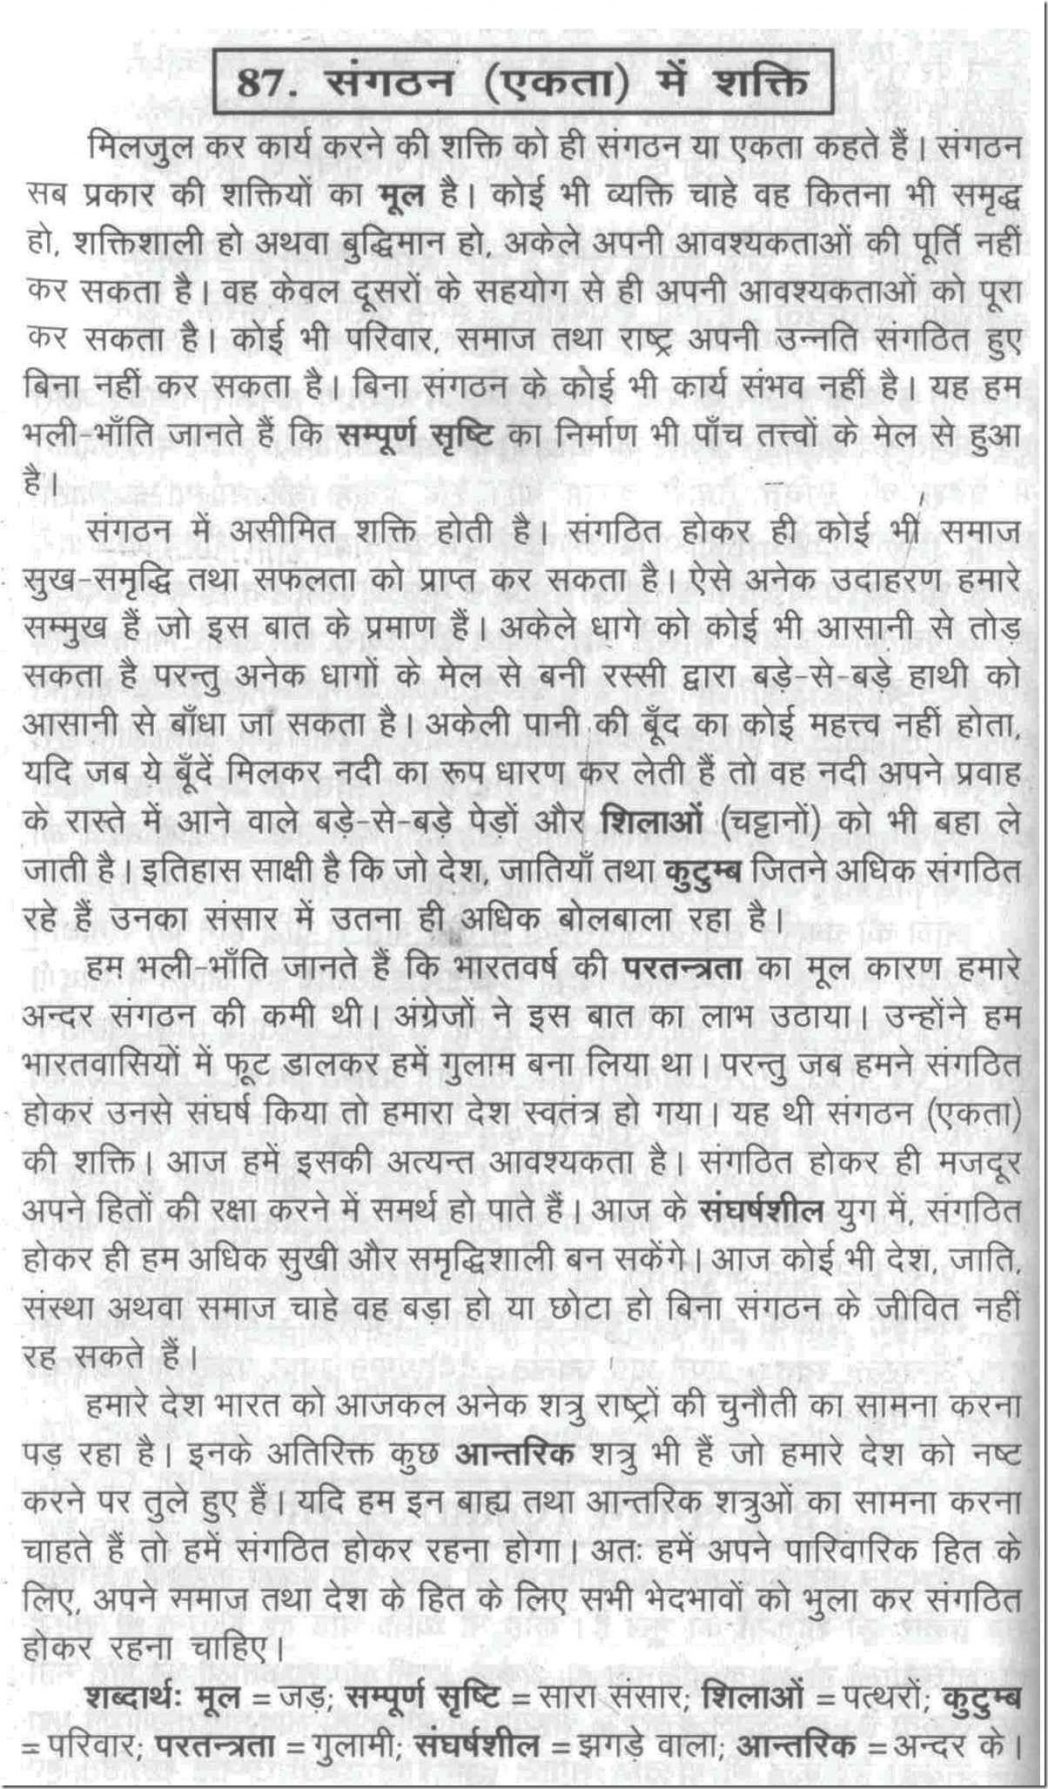 005 Essay On Class Unity Is Strength In Hindi I Cant Write My Personal 100087 Common App College Help 1048x1789 Fascinating Importance Of Diversity National Full